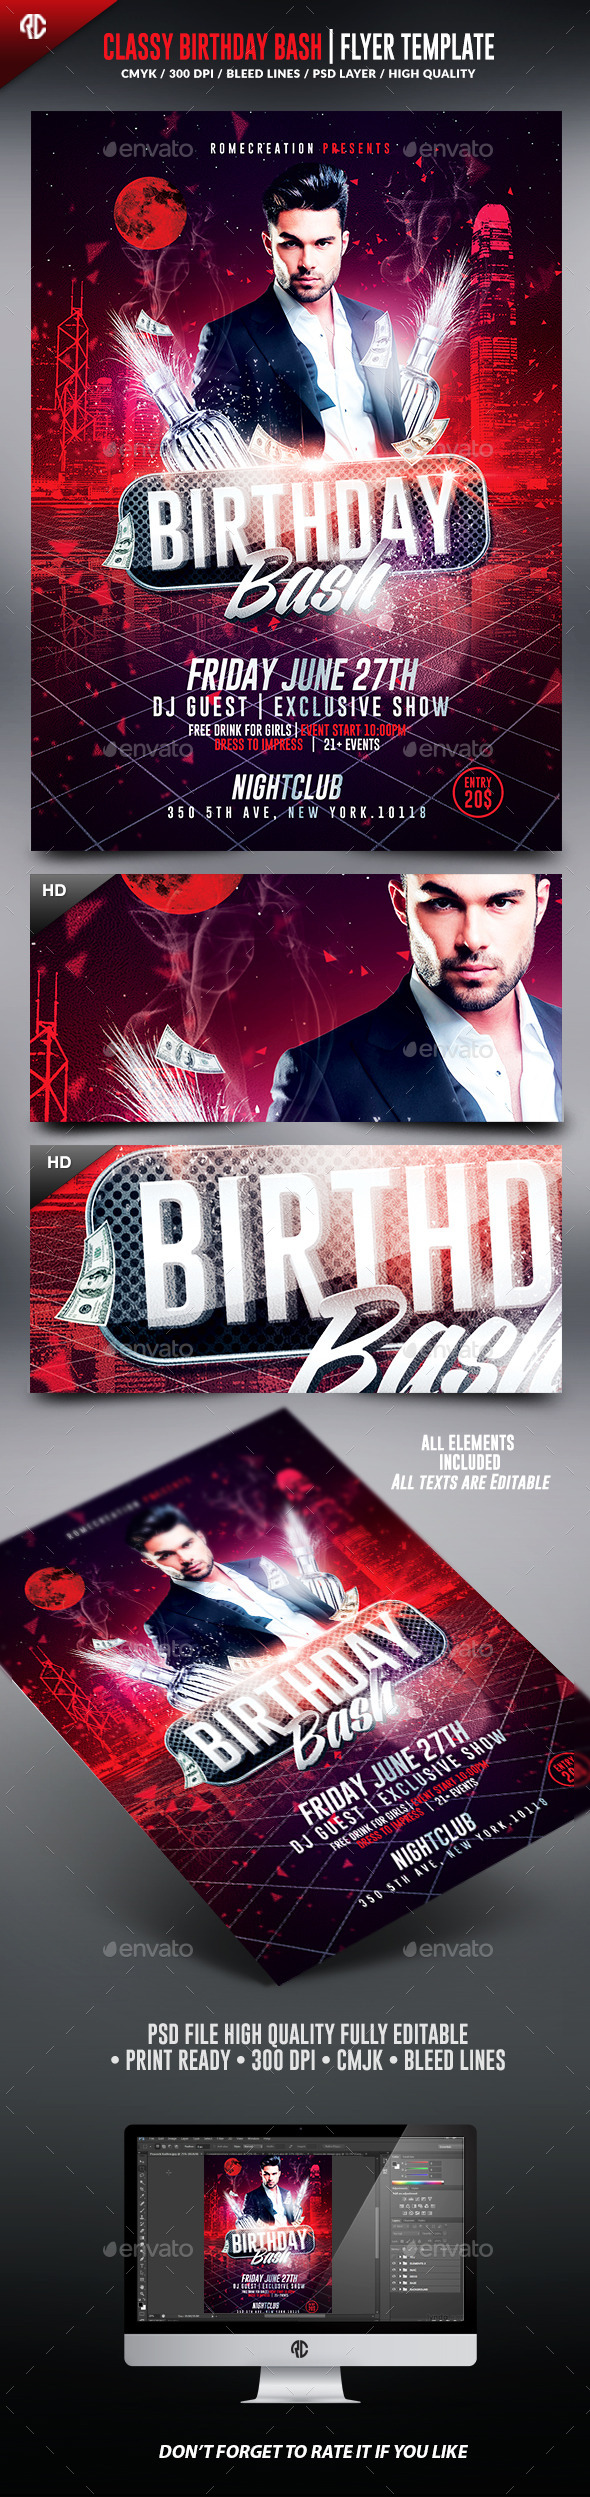 Birthday Bash | Classy Flyer Template  - Clubs & Parties Events